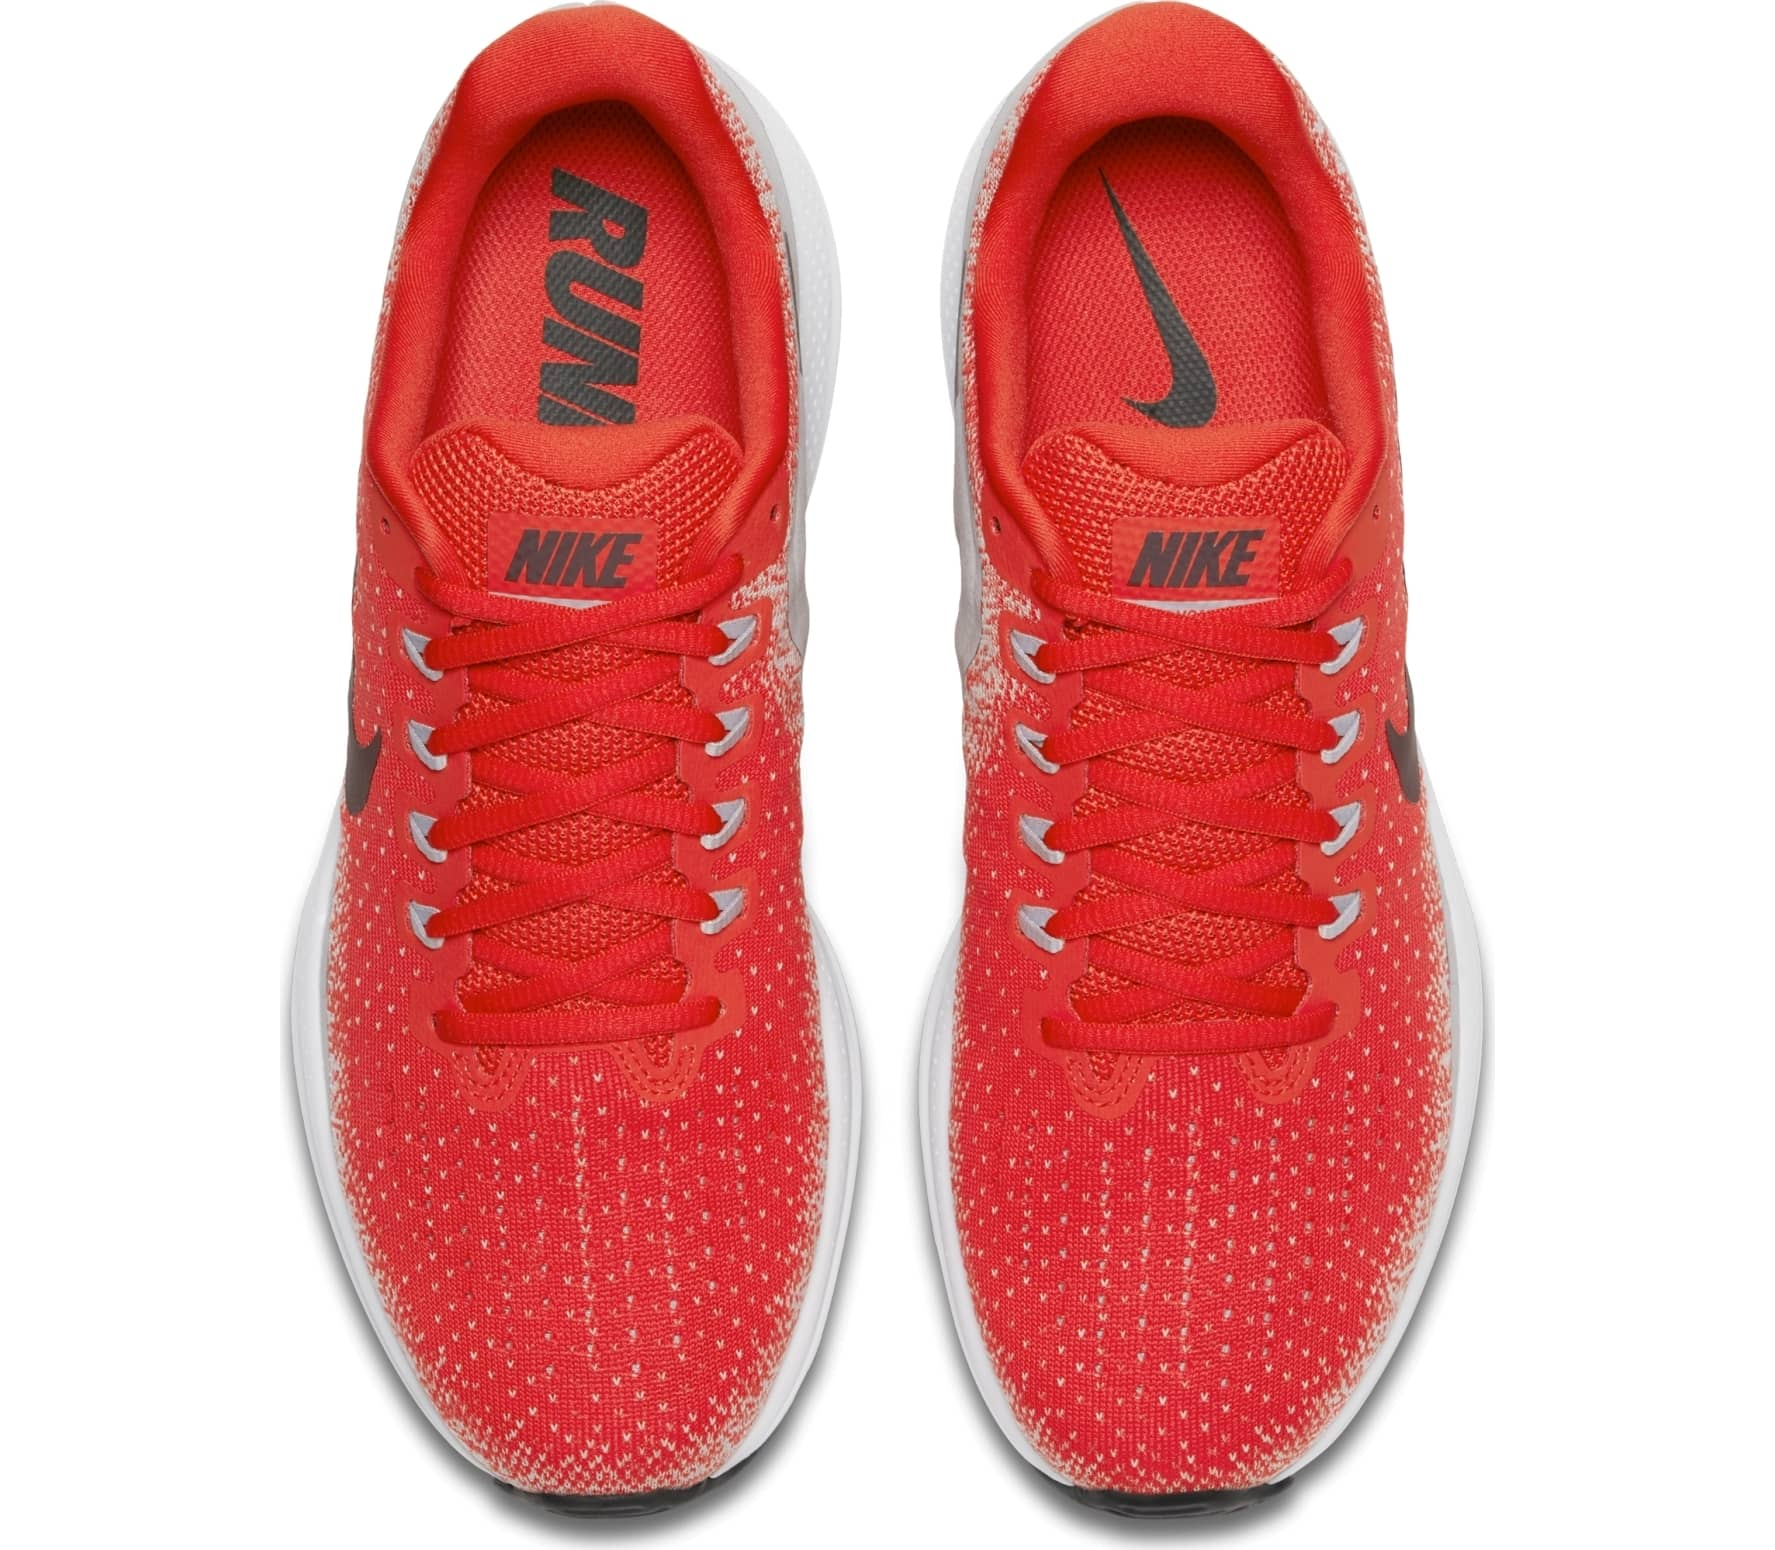 270e876a9423 ... free shipping nike air zoom vomero 13 mens running shoes red grey 6a1dd  1480c